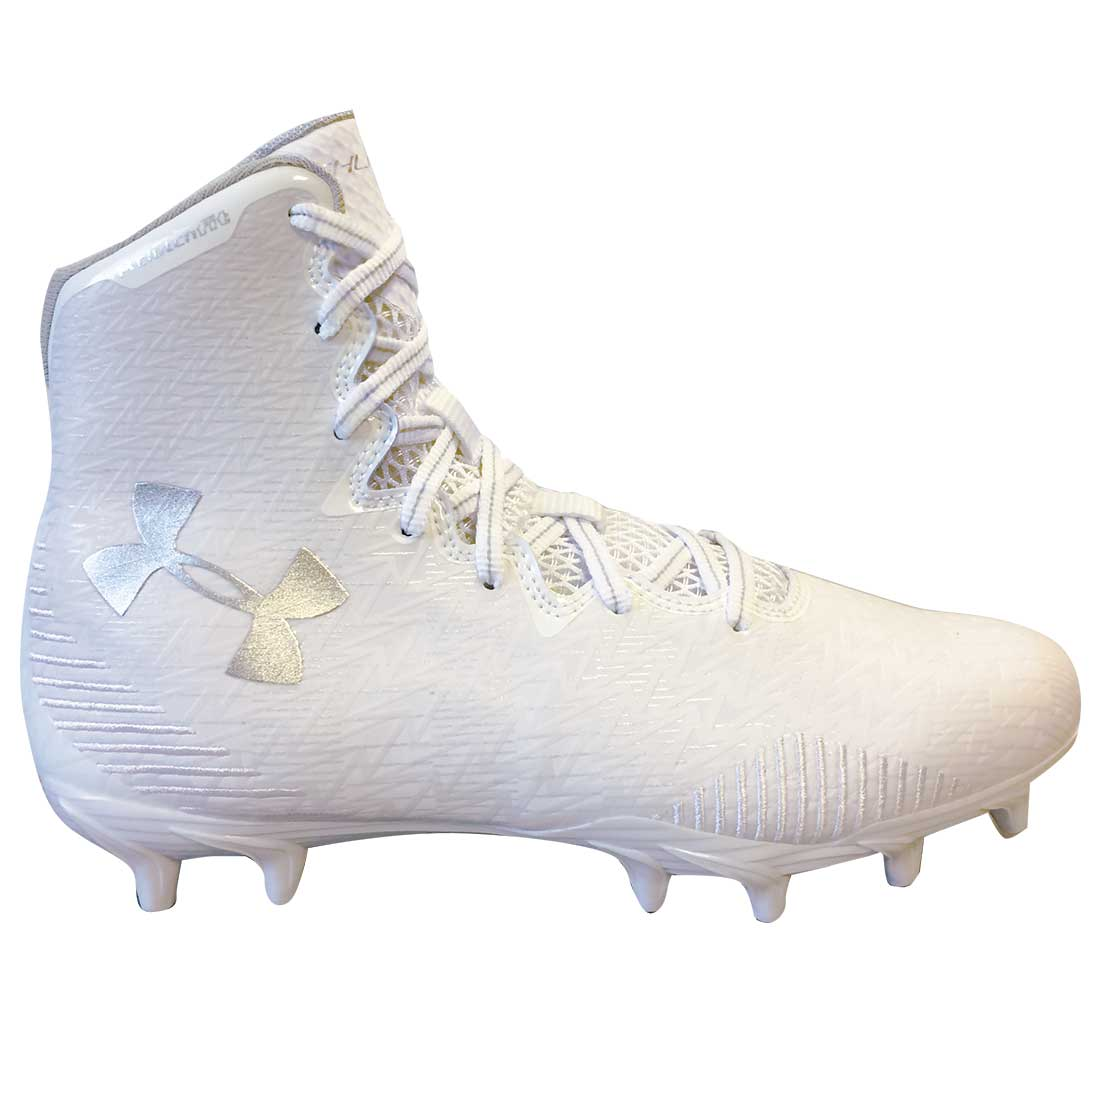 Under Armour Womens LAX Highlight Cleat - longstreth.com 76a953294403